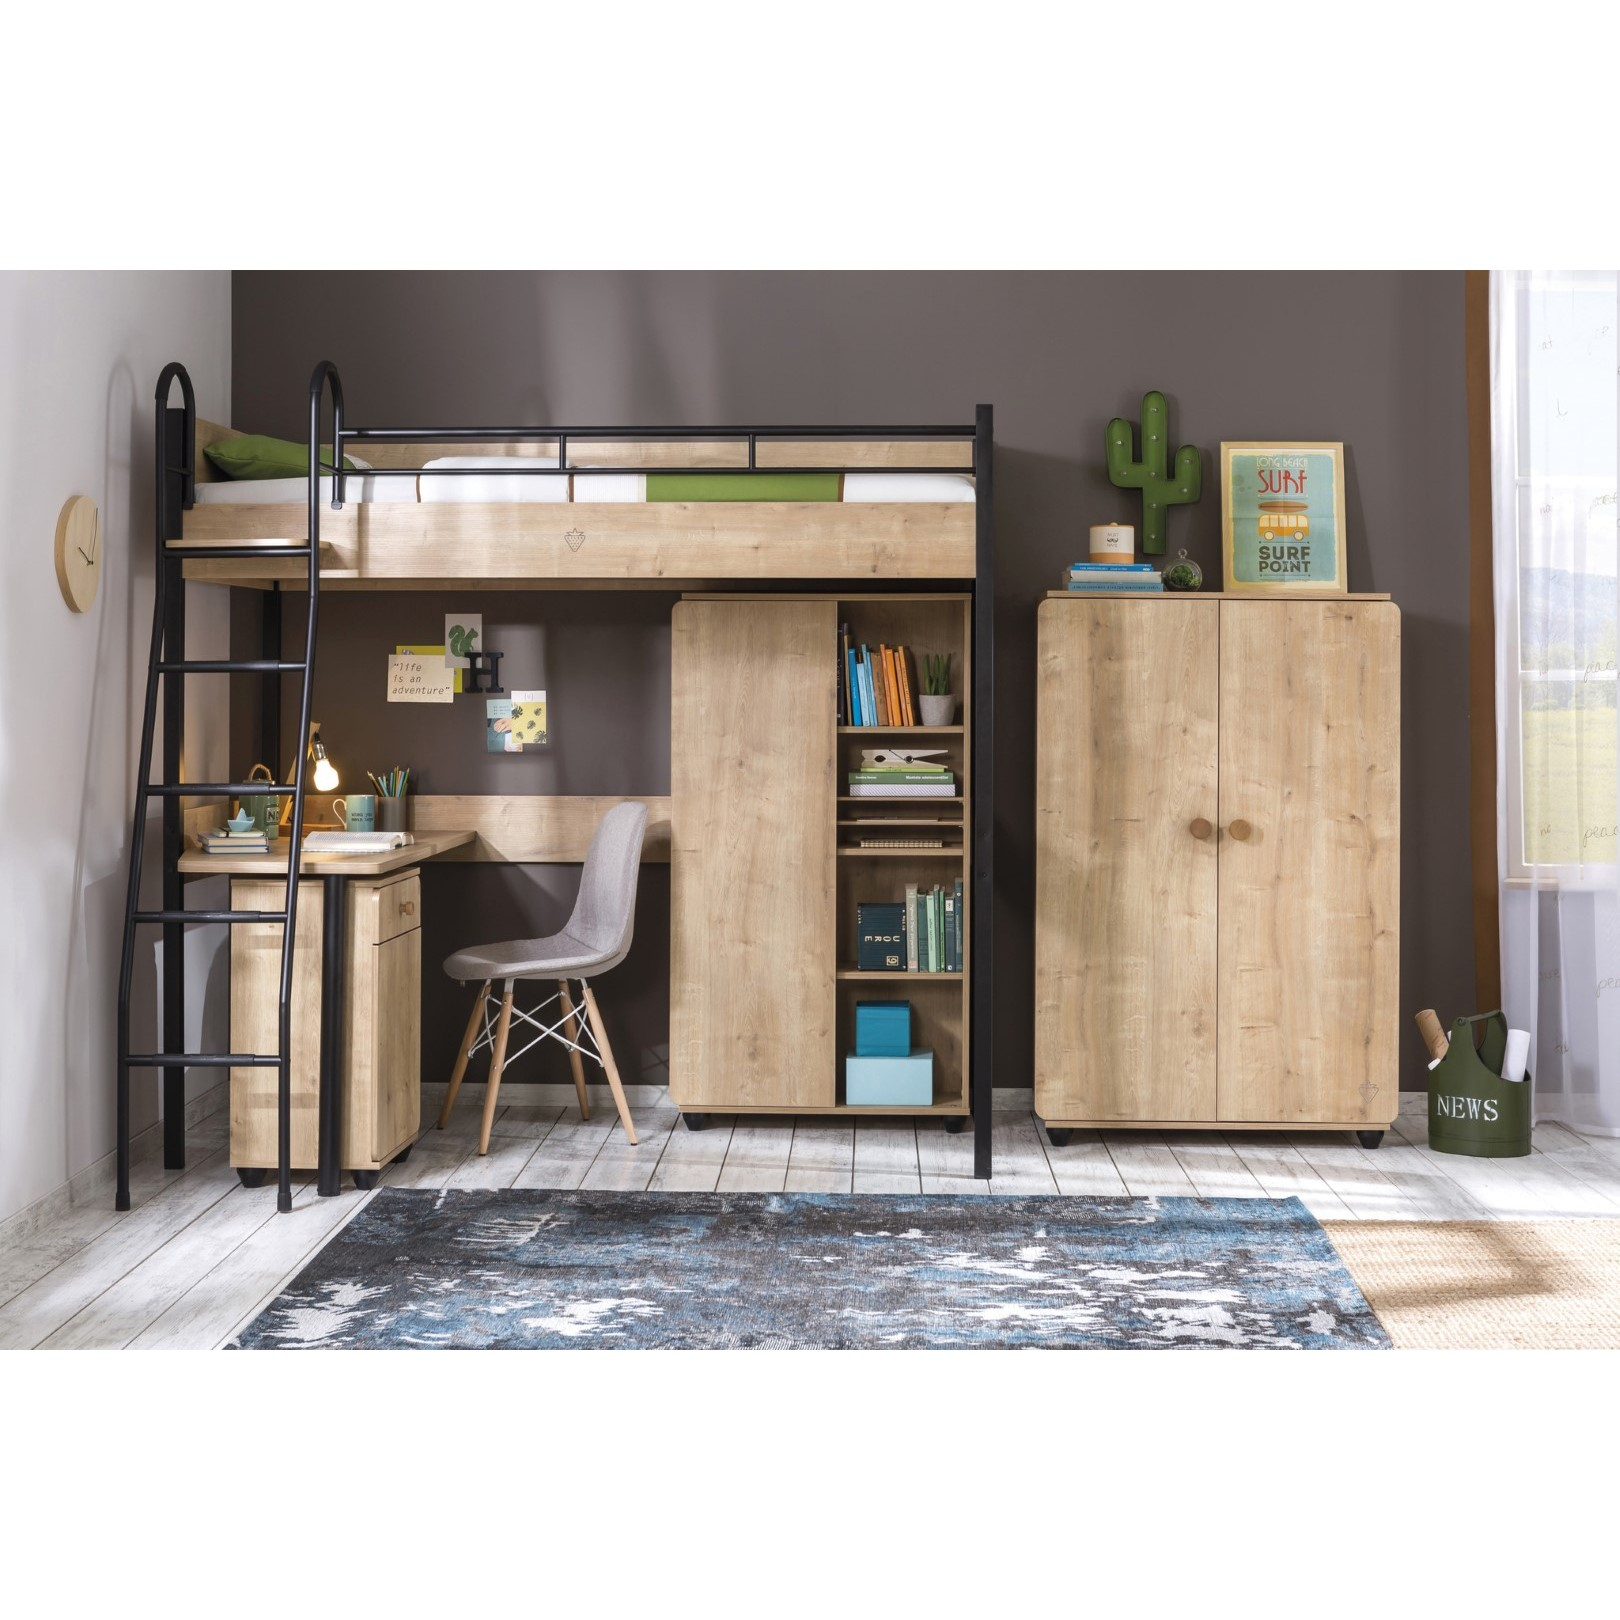 https://www.huisentuinwereld.nl/media/catalog/product/cache/1/image/1620x/9df78eab33525d08d6e5fb8d27136e95/s/t/stockholm_compact_kinderkamer_kleine_jongenskamer_kleine_meisjeskamer_kindermeubels_kinderbed_kindekledingkast_kinderbureau_2.jpg